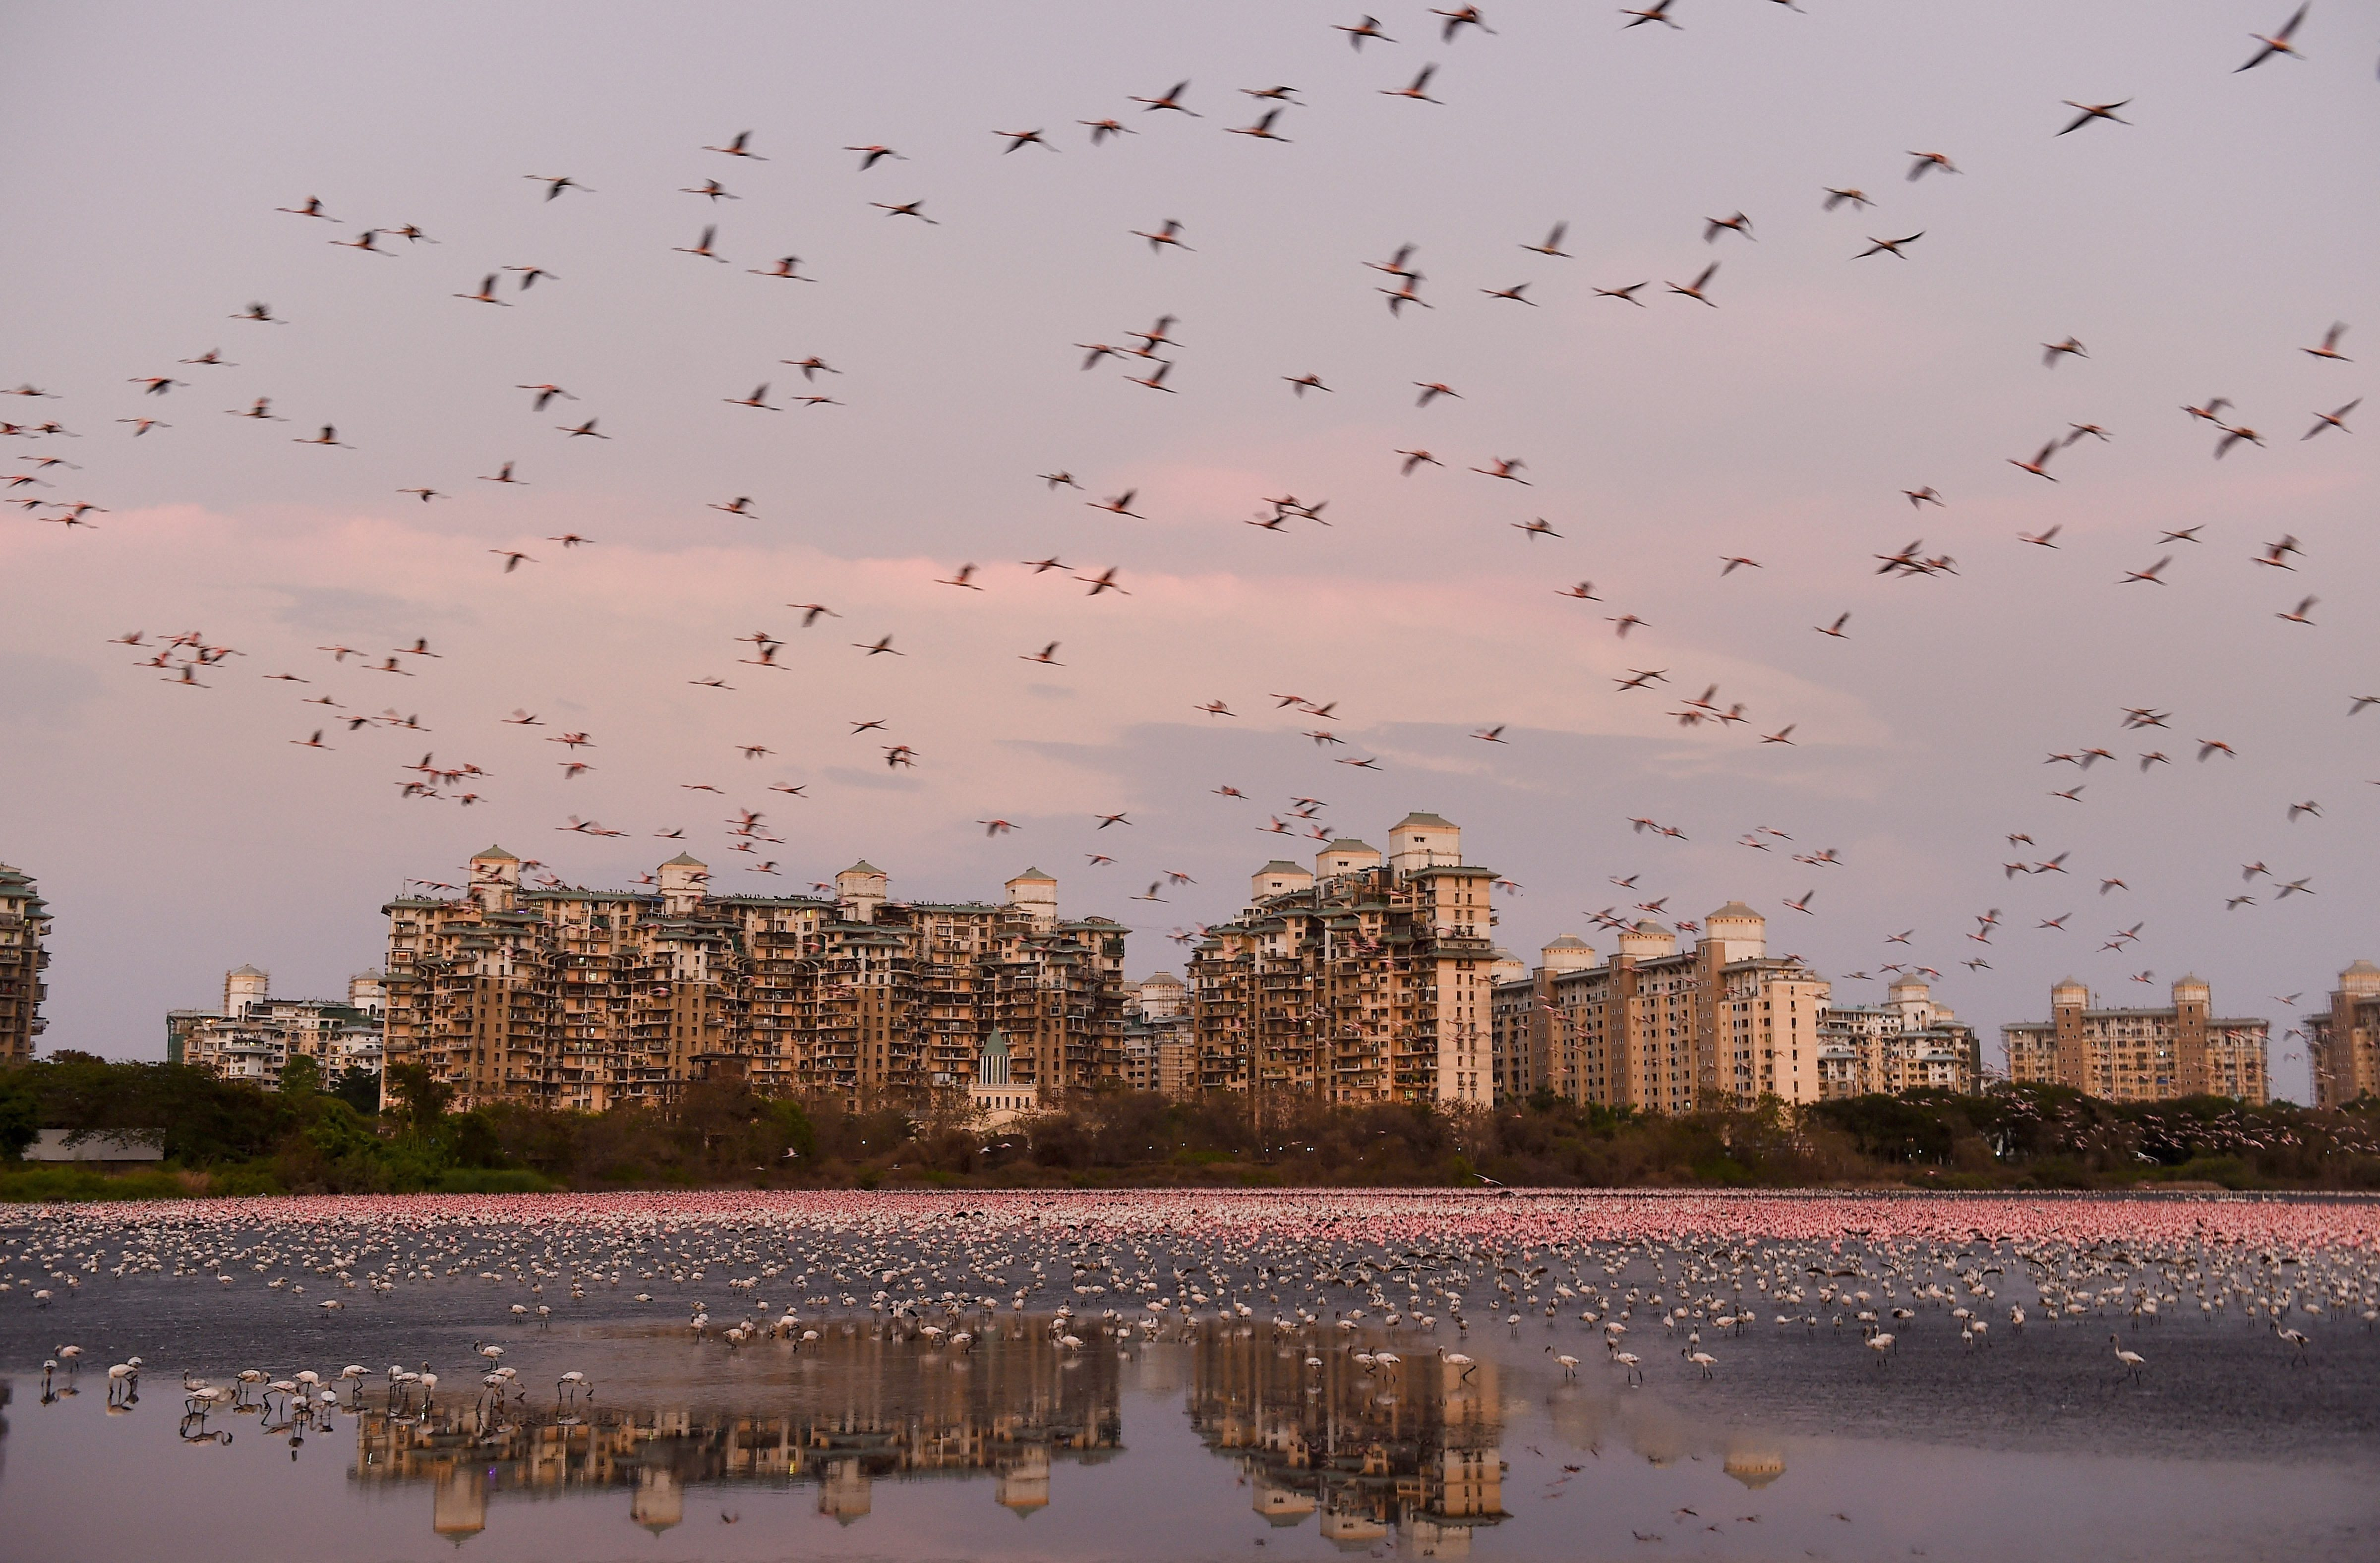 Flamingoes are seen in huge numbers behind NRI colony in Talawe wetland, Nerul, during the nationwide lockdown, in Mumbai, Thursday, May 14, 2020. Maharashtra government has extended the lockdown in the state till May 31, 2020.